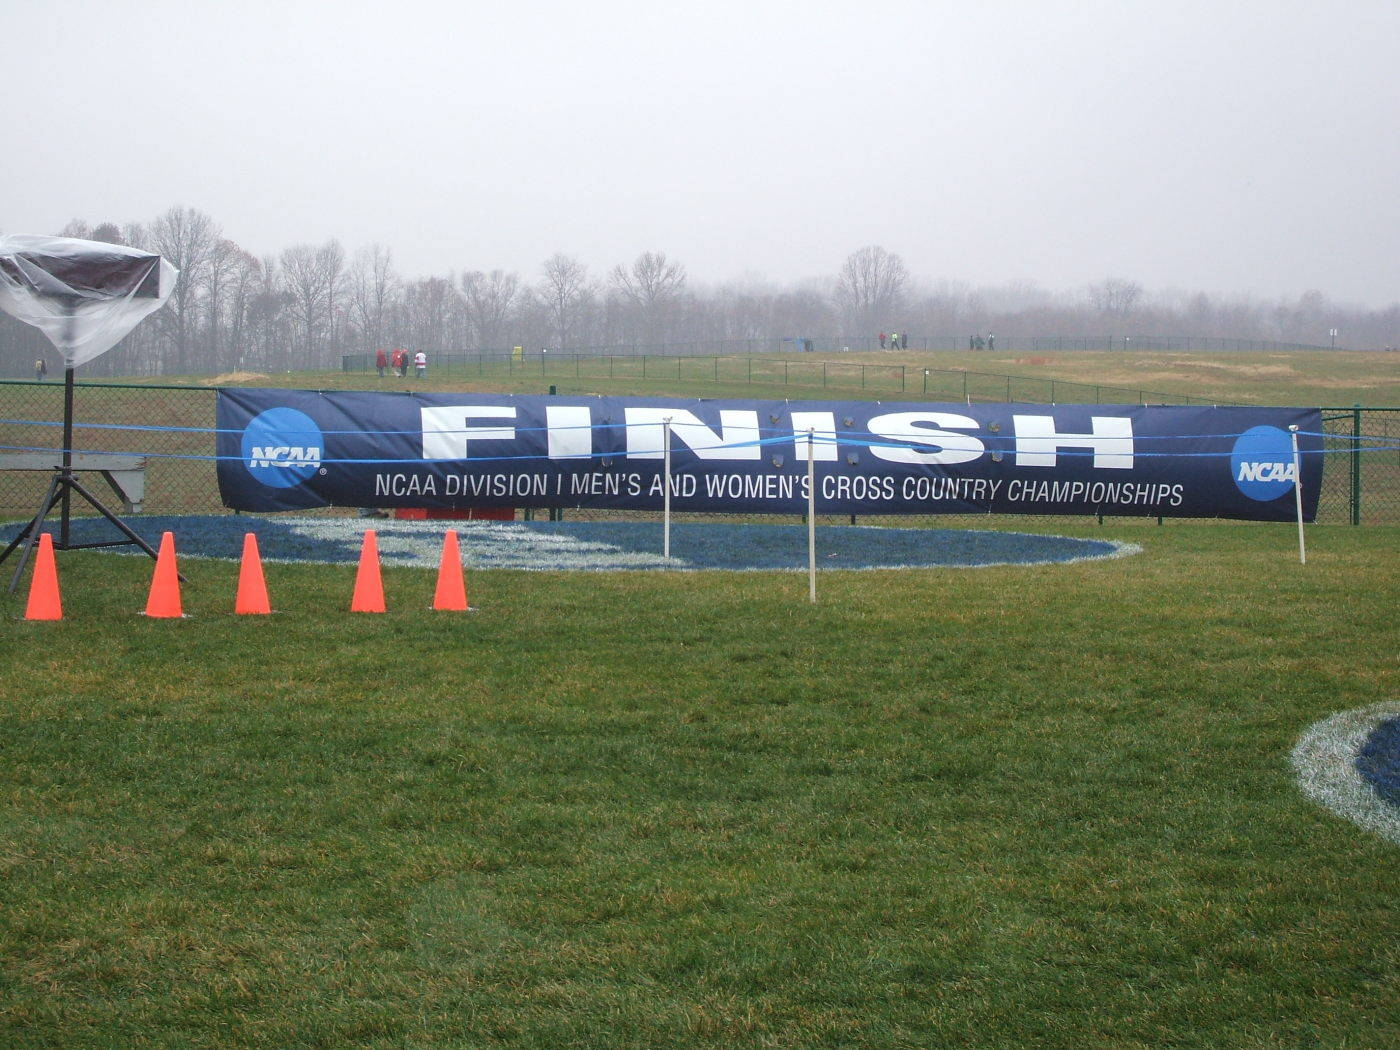 The 2008 NCAA Cross Country Nationals Finish Line.